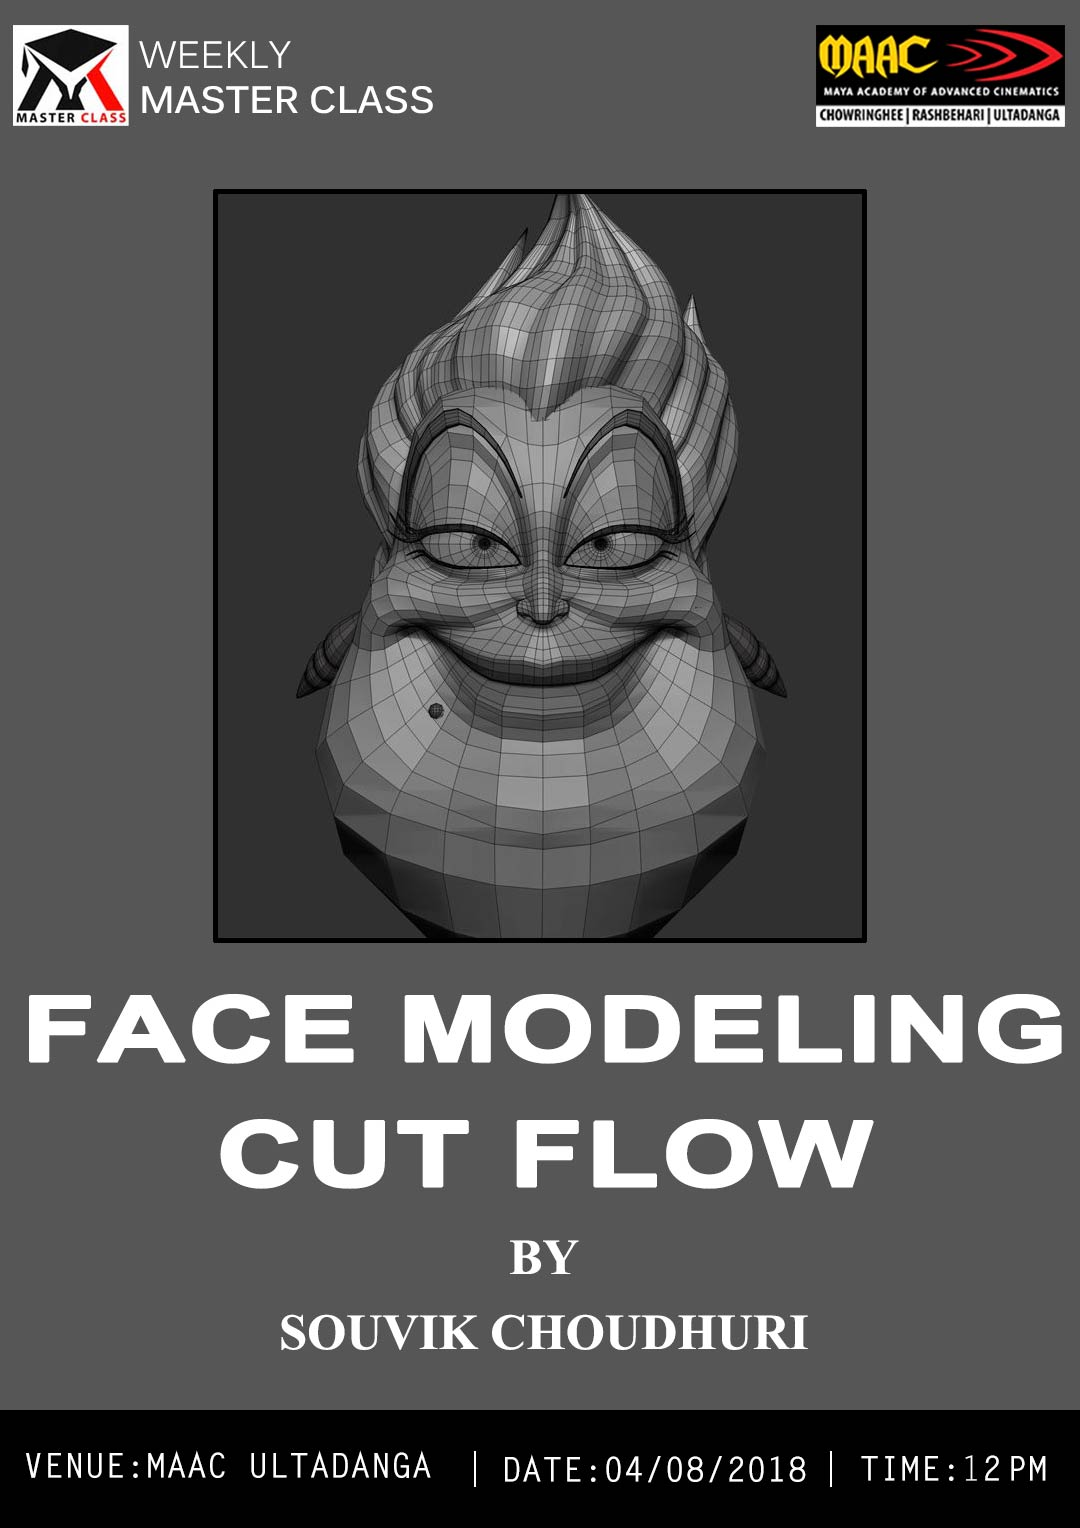 Weekly Master Class on Face Modeling Cut Flow